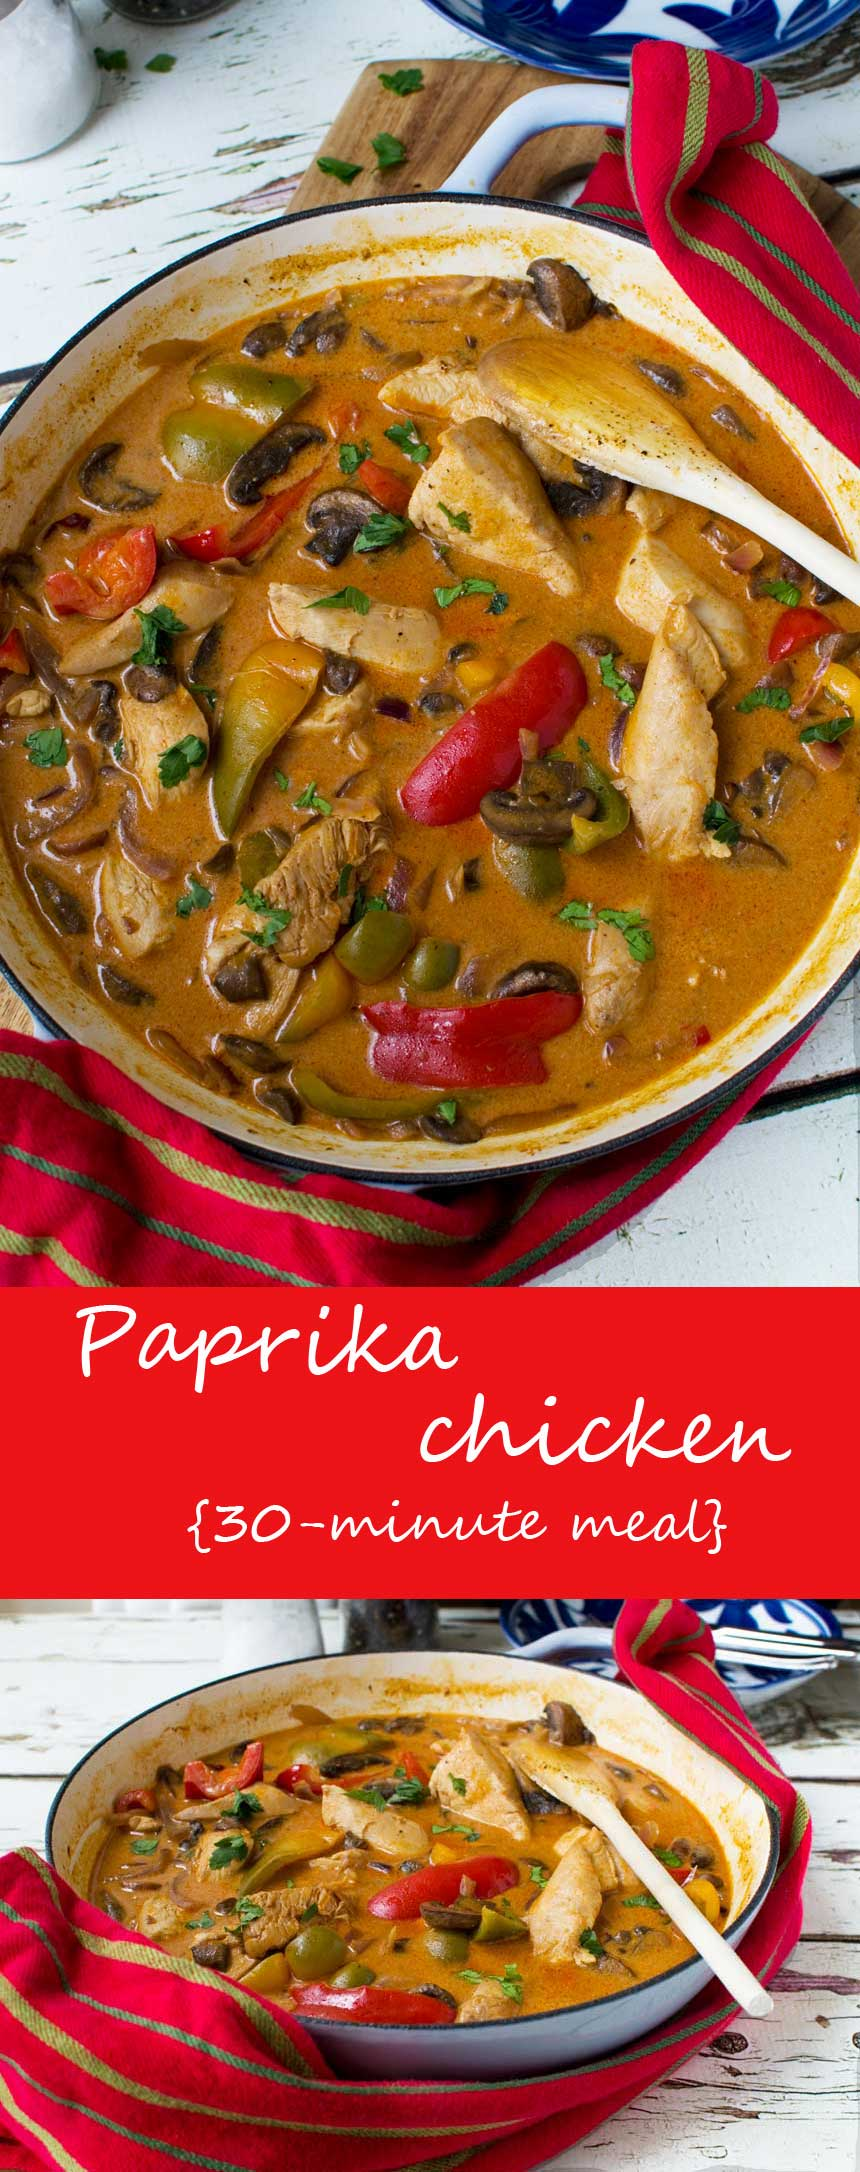 This easy paprika chicken is a smoky, creamy chicken dish with peppers, onions and mushrooms. Delicious, and quick & easy to make! #chicken #scrummylane #paprika #creamy #onions #mushrooms #easydinner